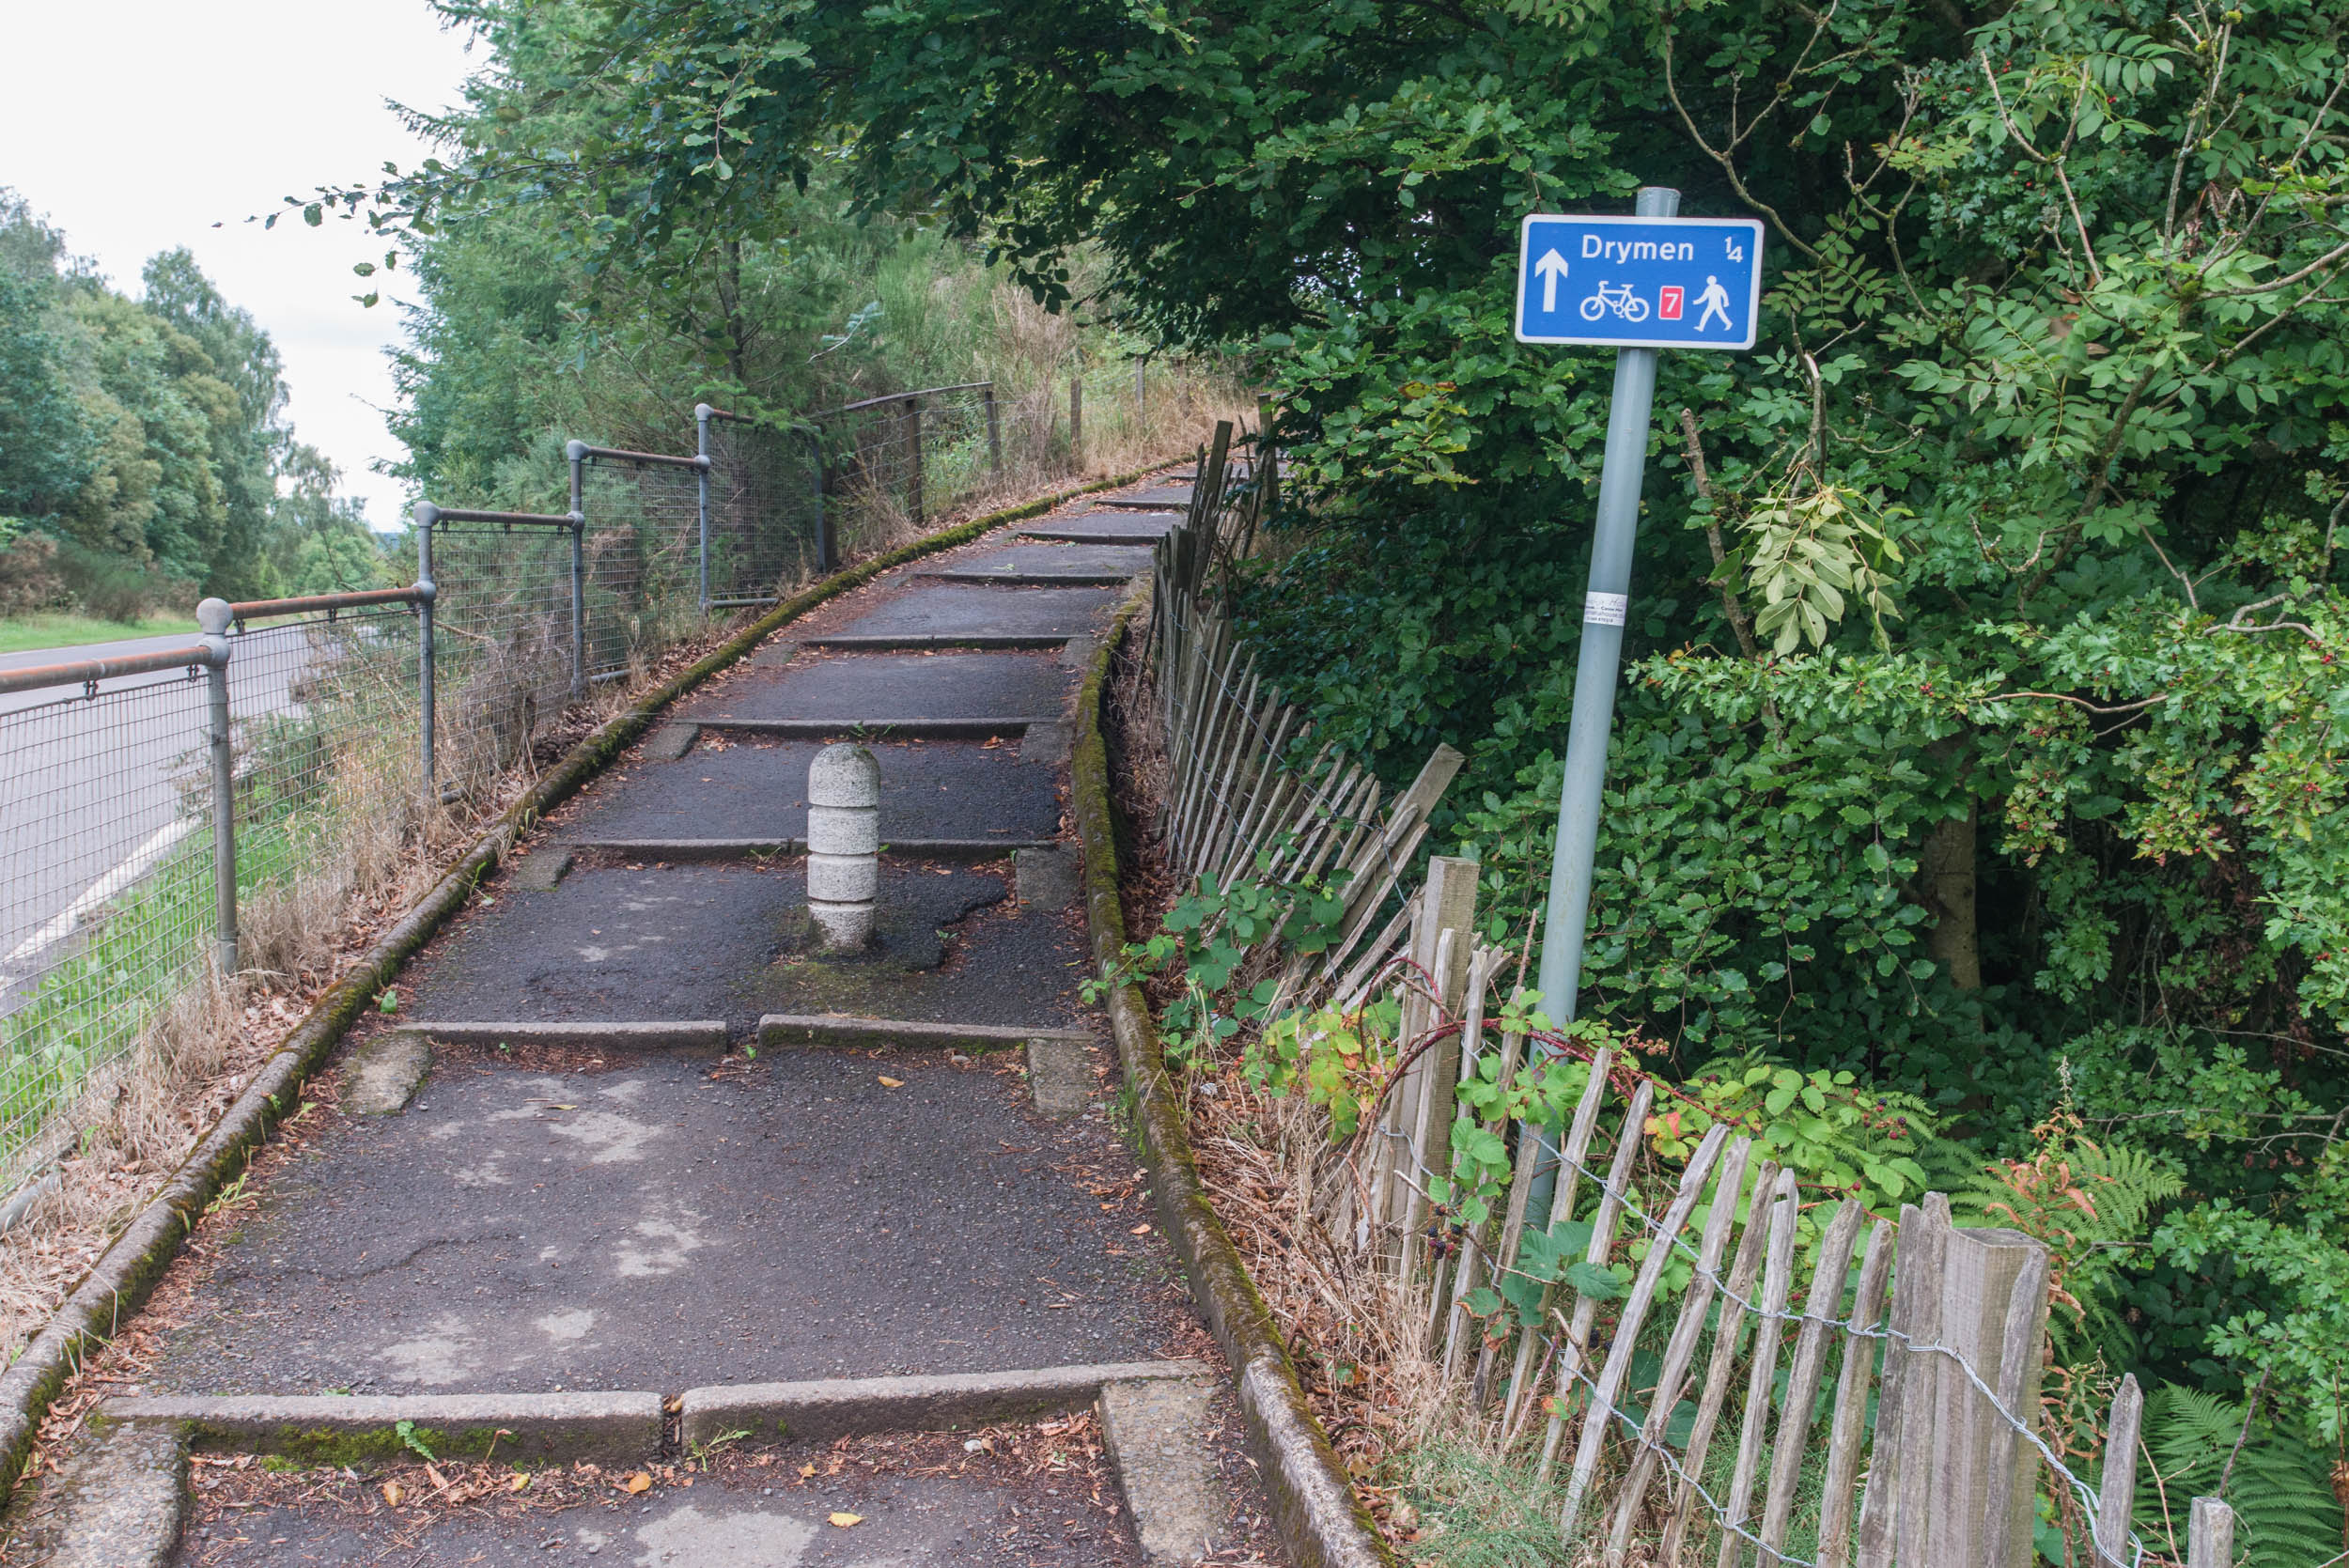 On the Number 7 Cycle Route